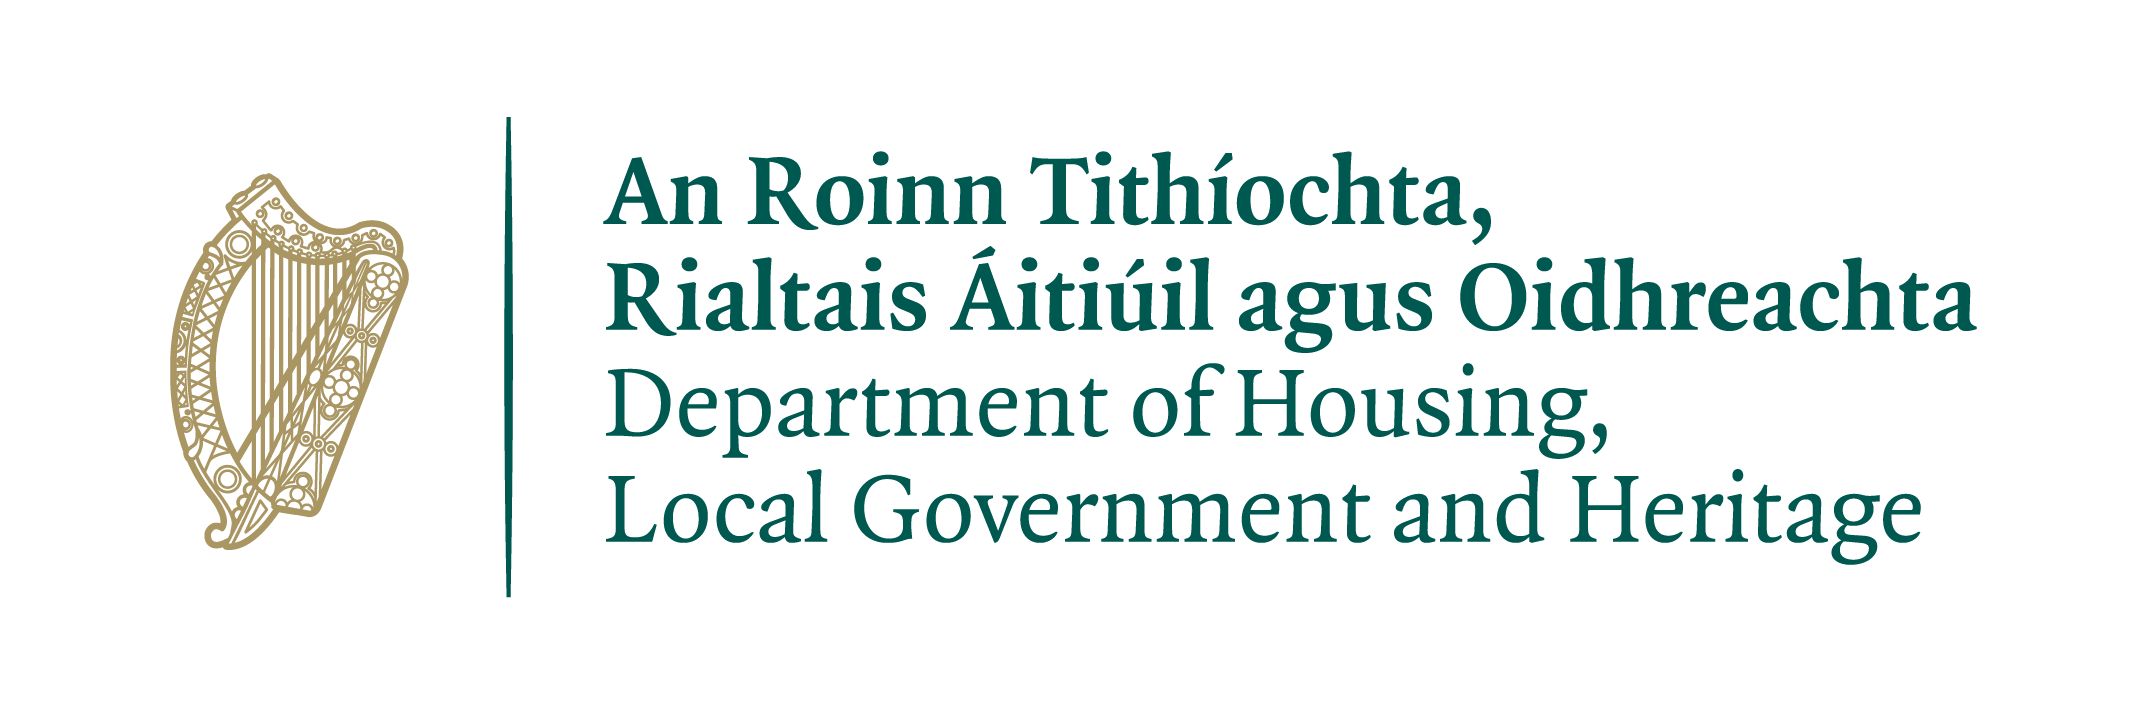 National Monuments Service, Department of Housing, Heritage and Local Government